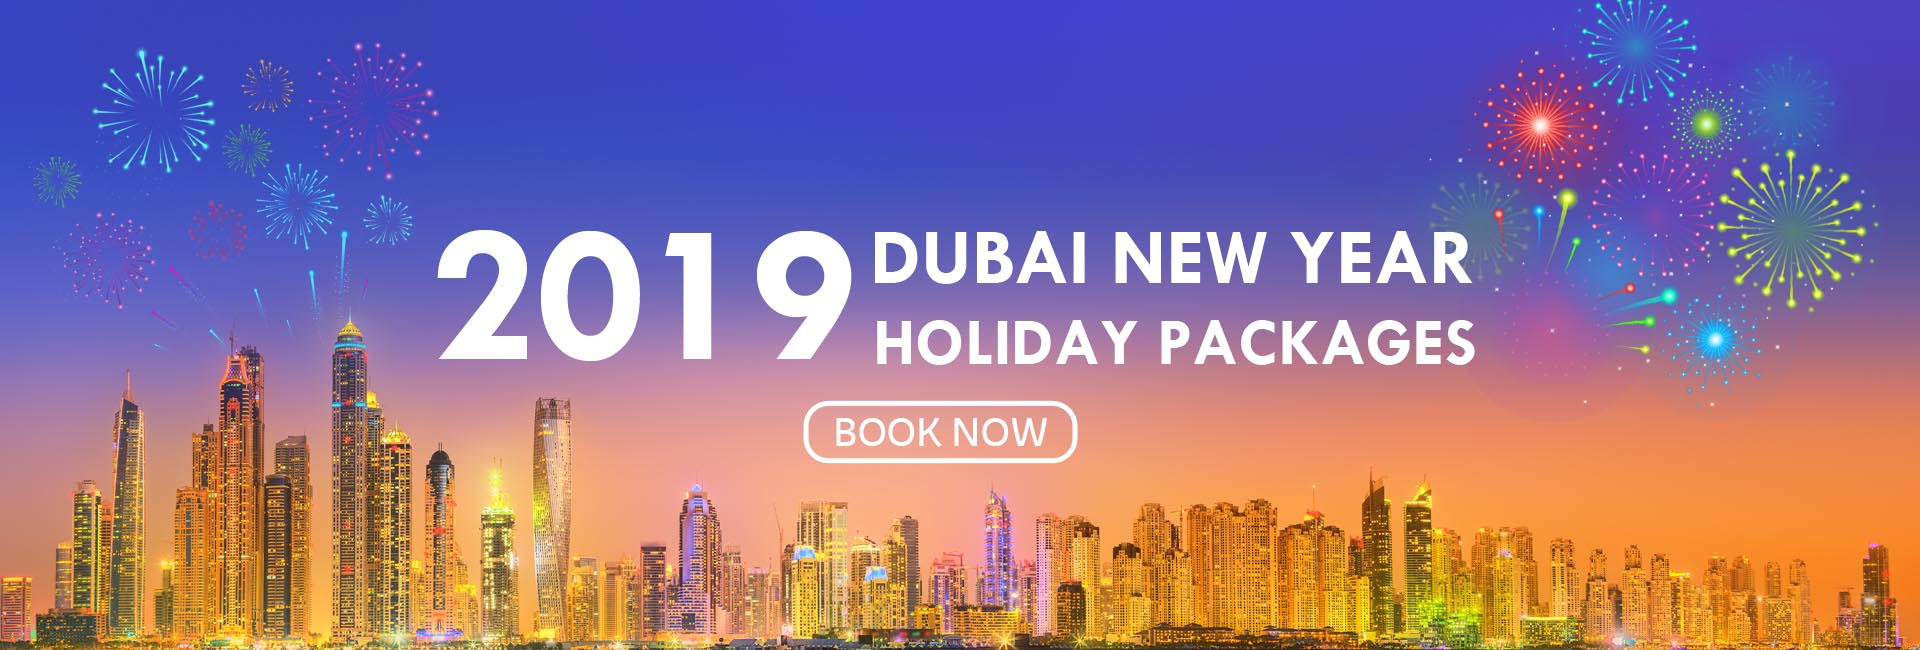 dubai new year packages 2019